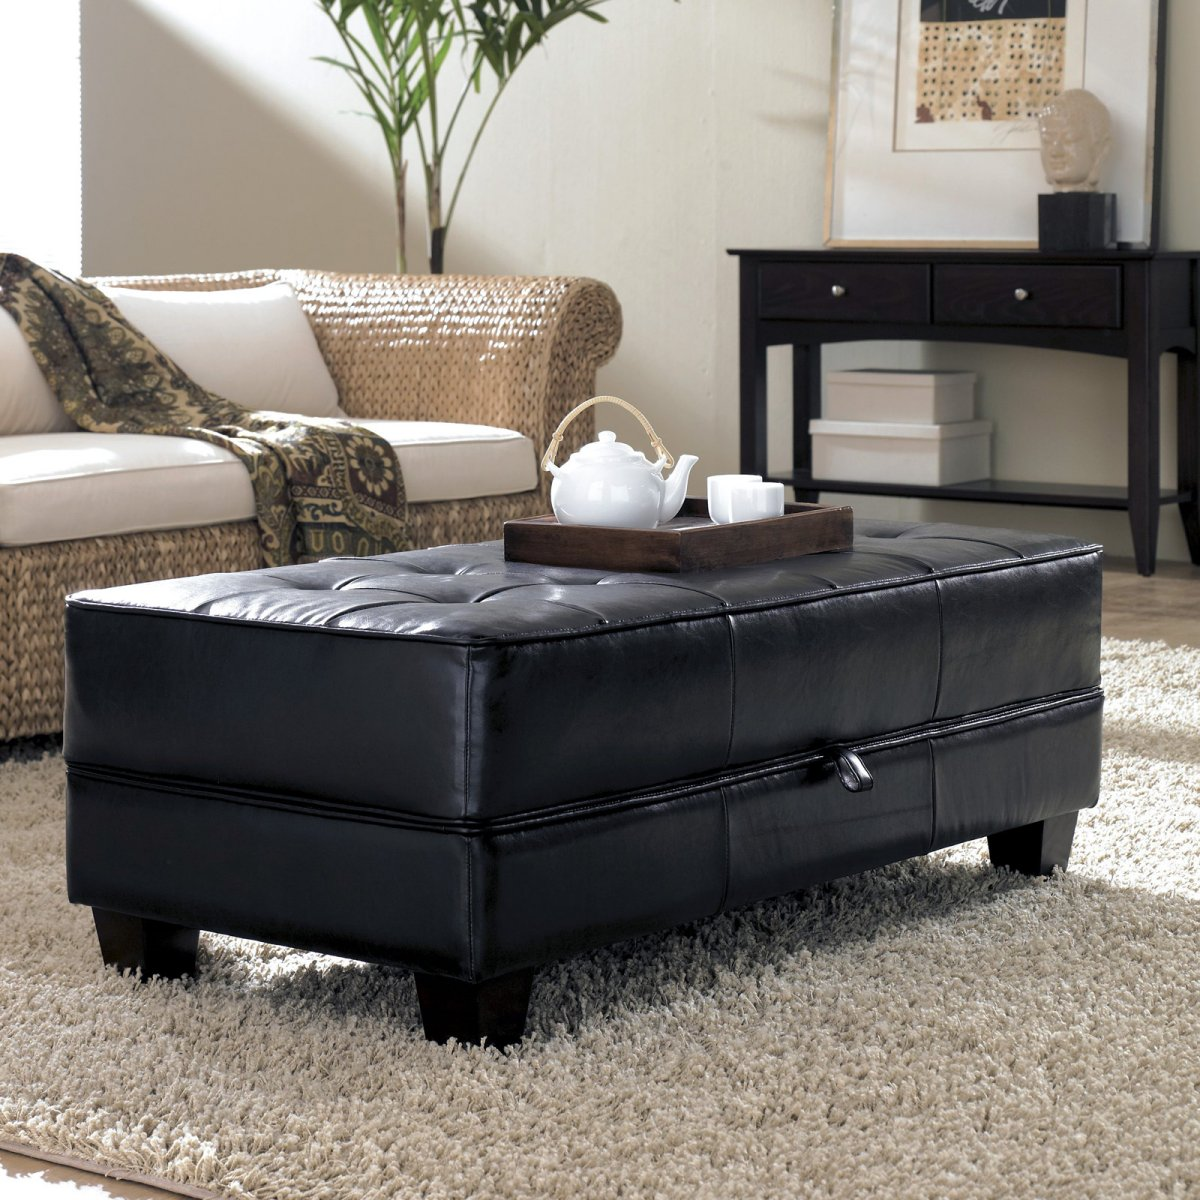 freestanding-rectangle-black-leather-covered-upholstered-ottoman-coffee-table-reclaimed-metal-mid-century-round-natural-diy-leather-ottoman-coffee-tab (Image 3 of 10)